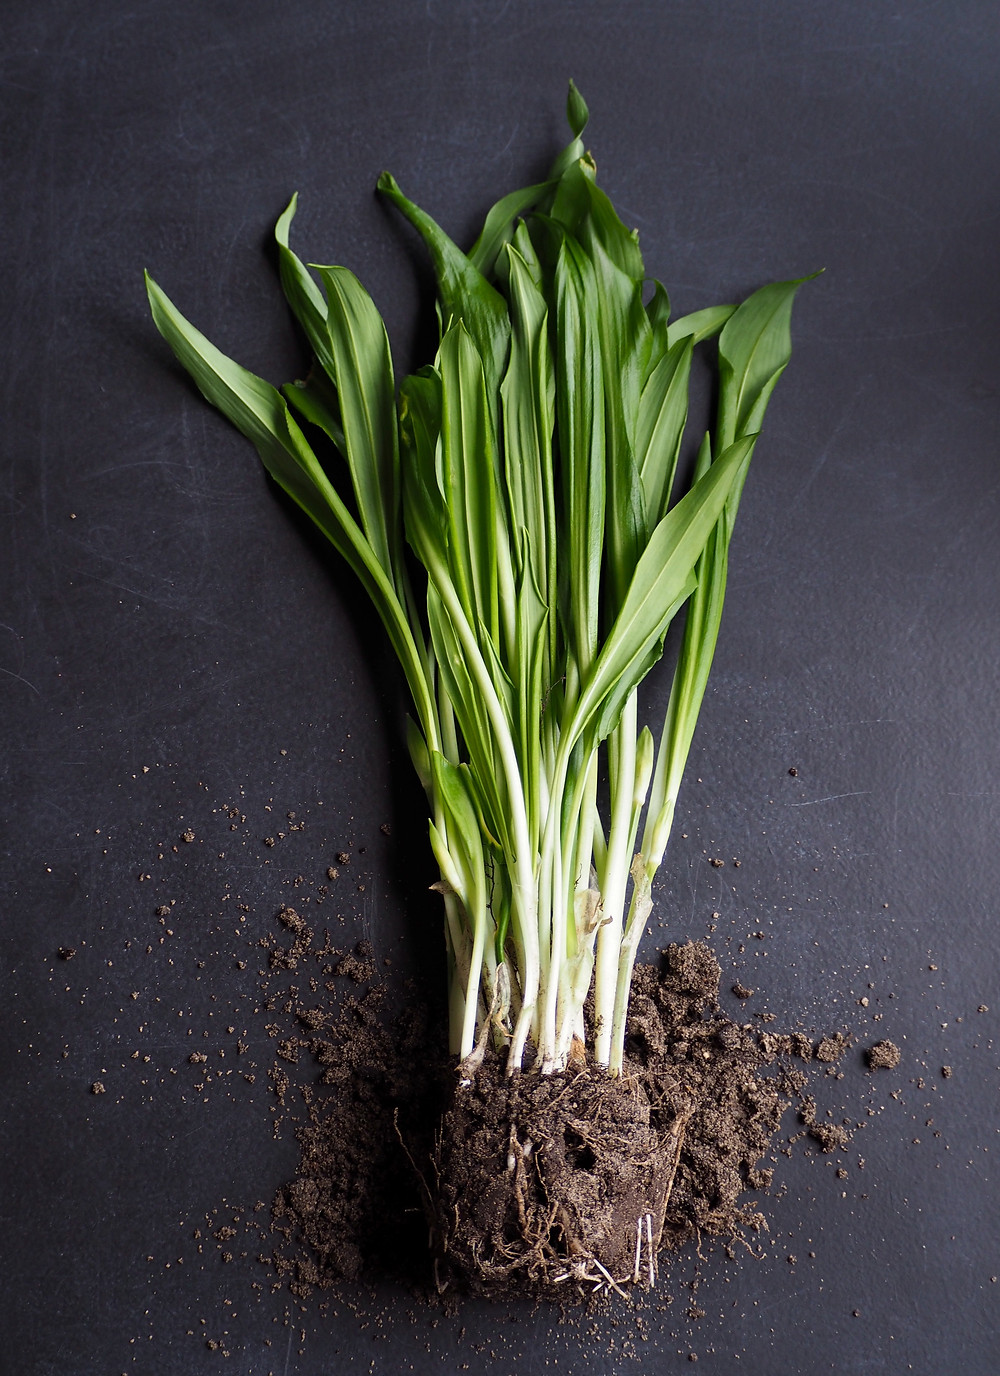 Leeks grown to full size. Photo by Anna Voss on Unsplash